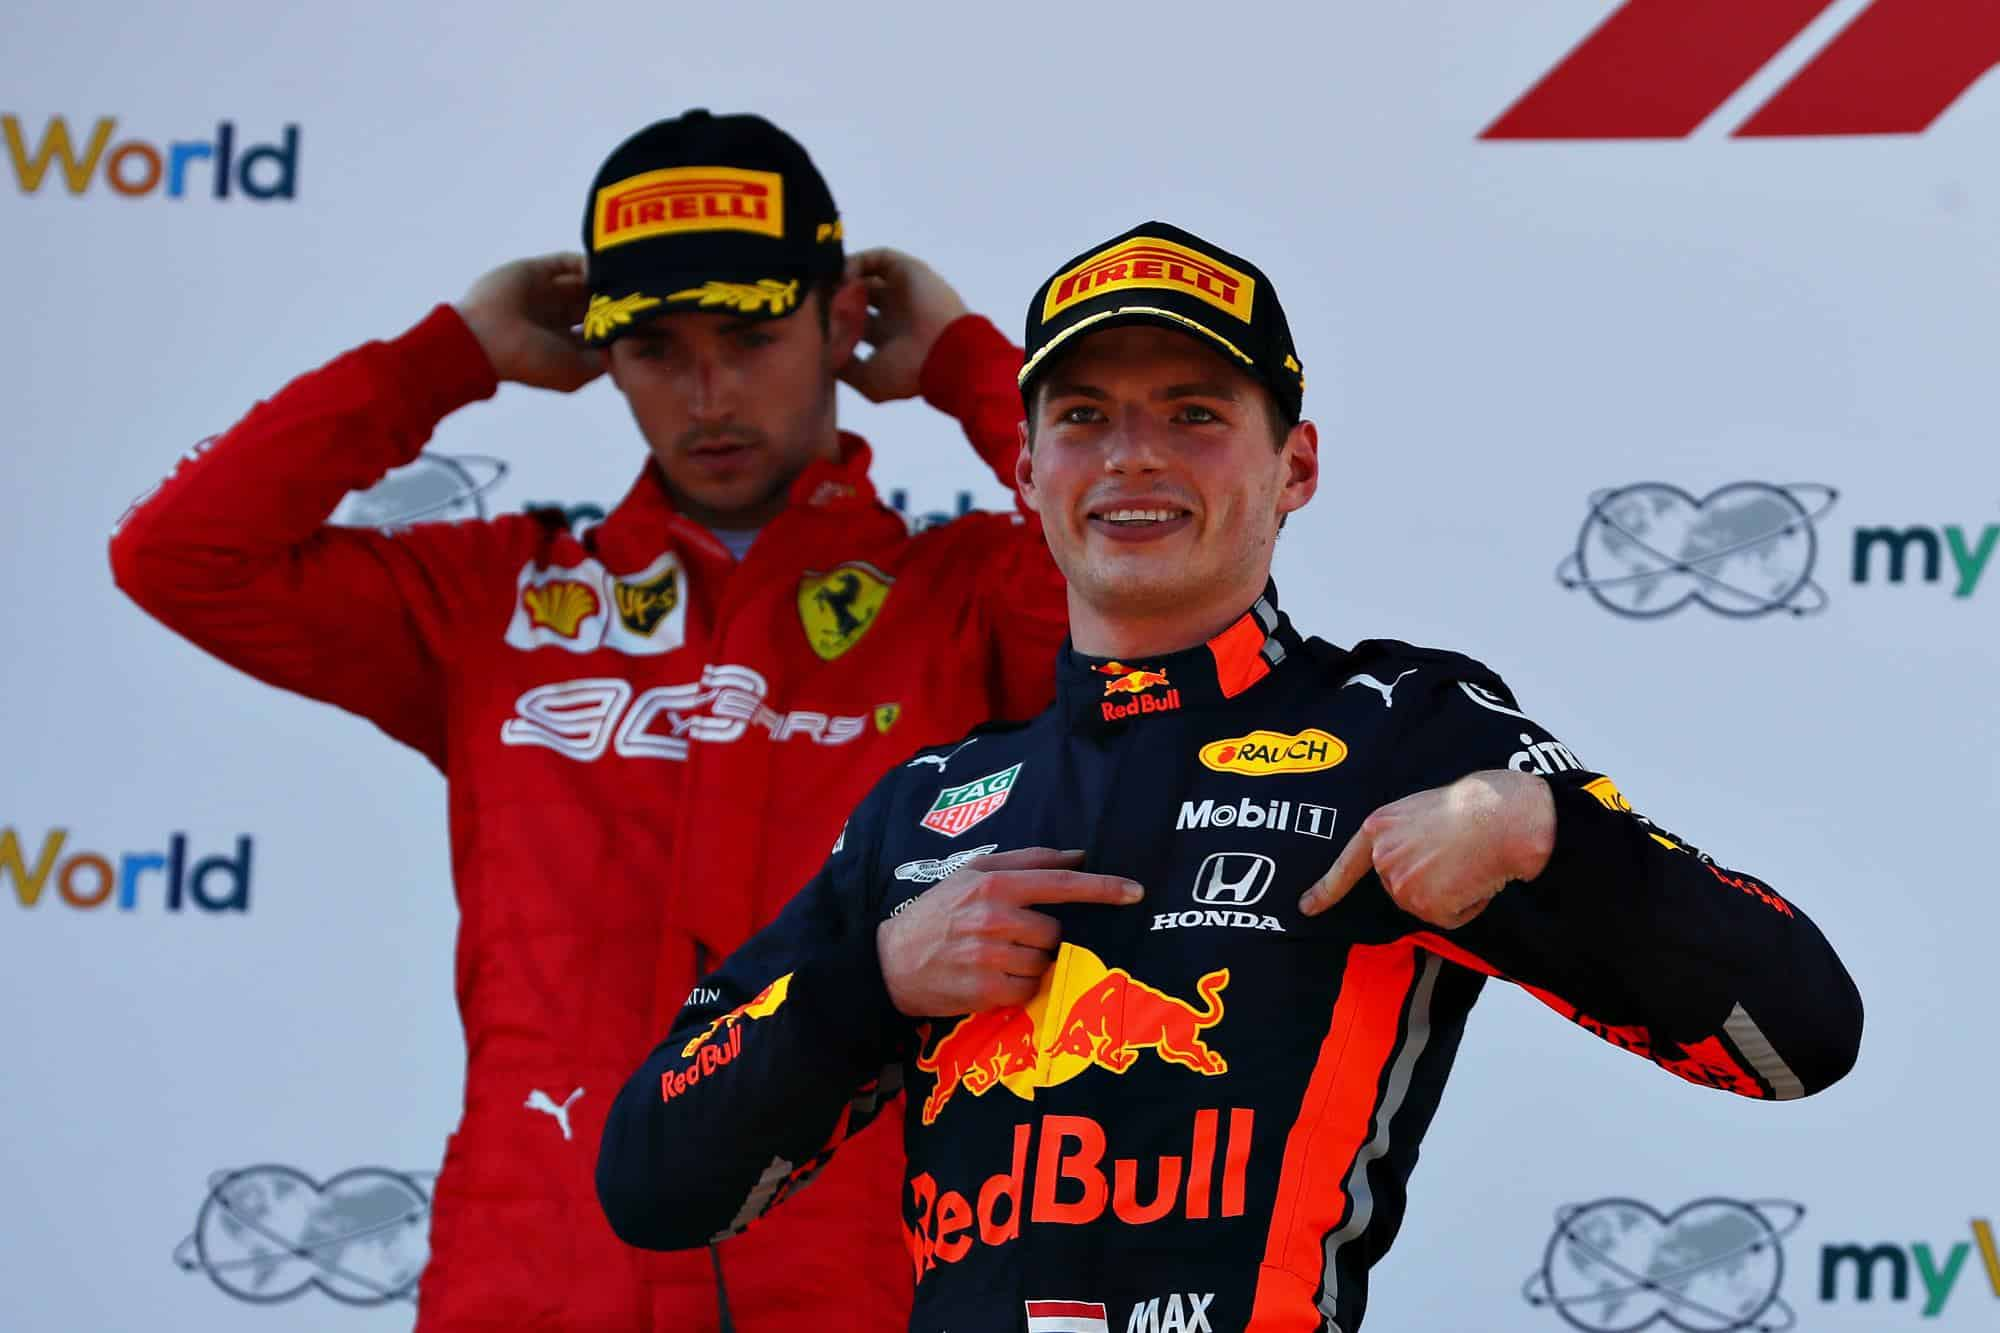 Max Verstappen Red Bull Honda and Charles Leclerc Ferrari on podium Austrian GP F1 2019 Photo Red Bull